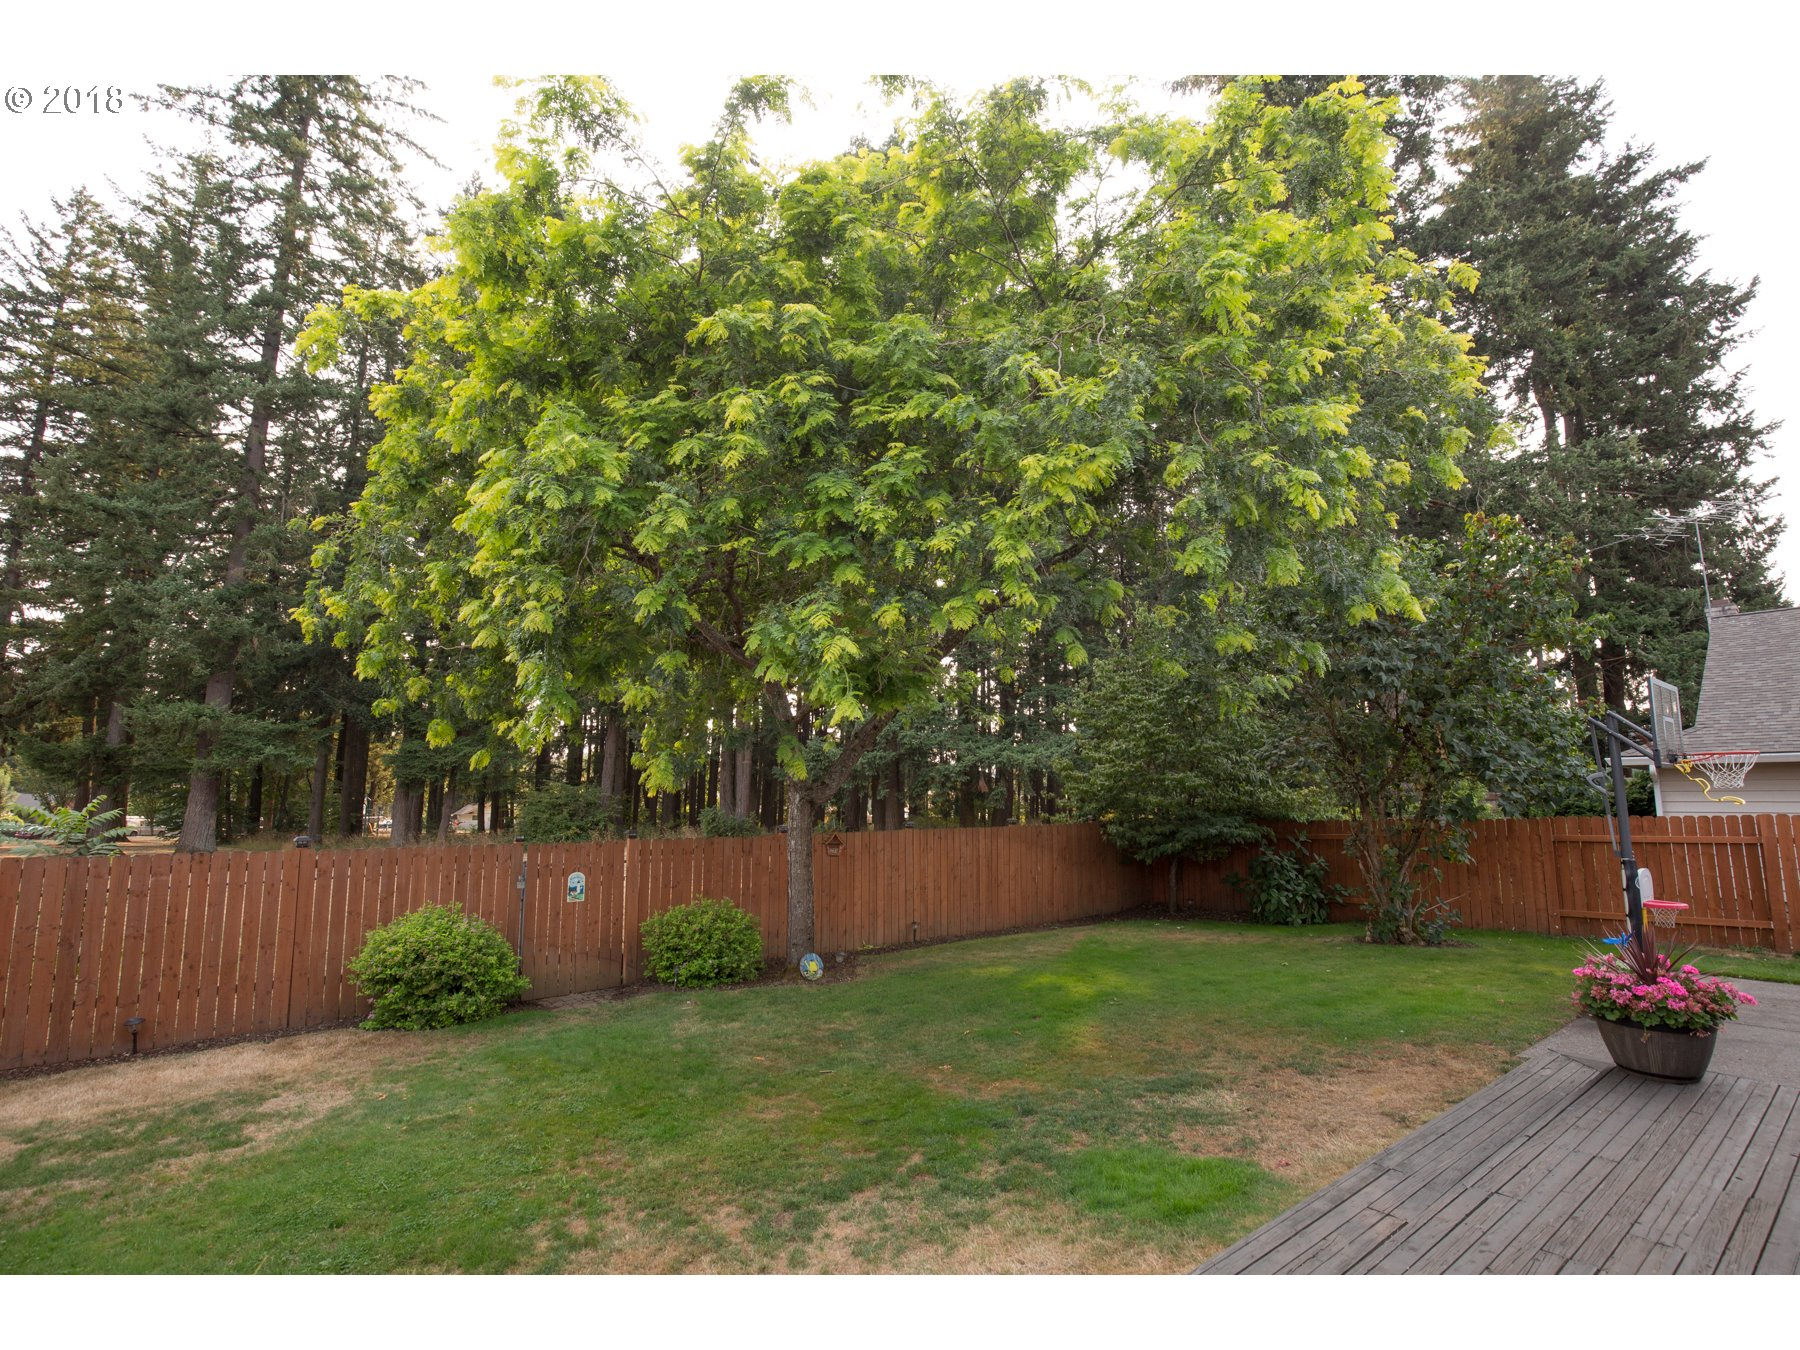 804 NE 154TH AVE Vancouver, WA 98684 - MLS #: 18679529